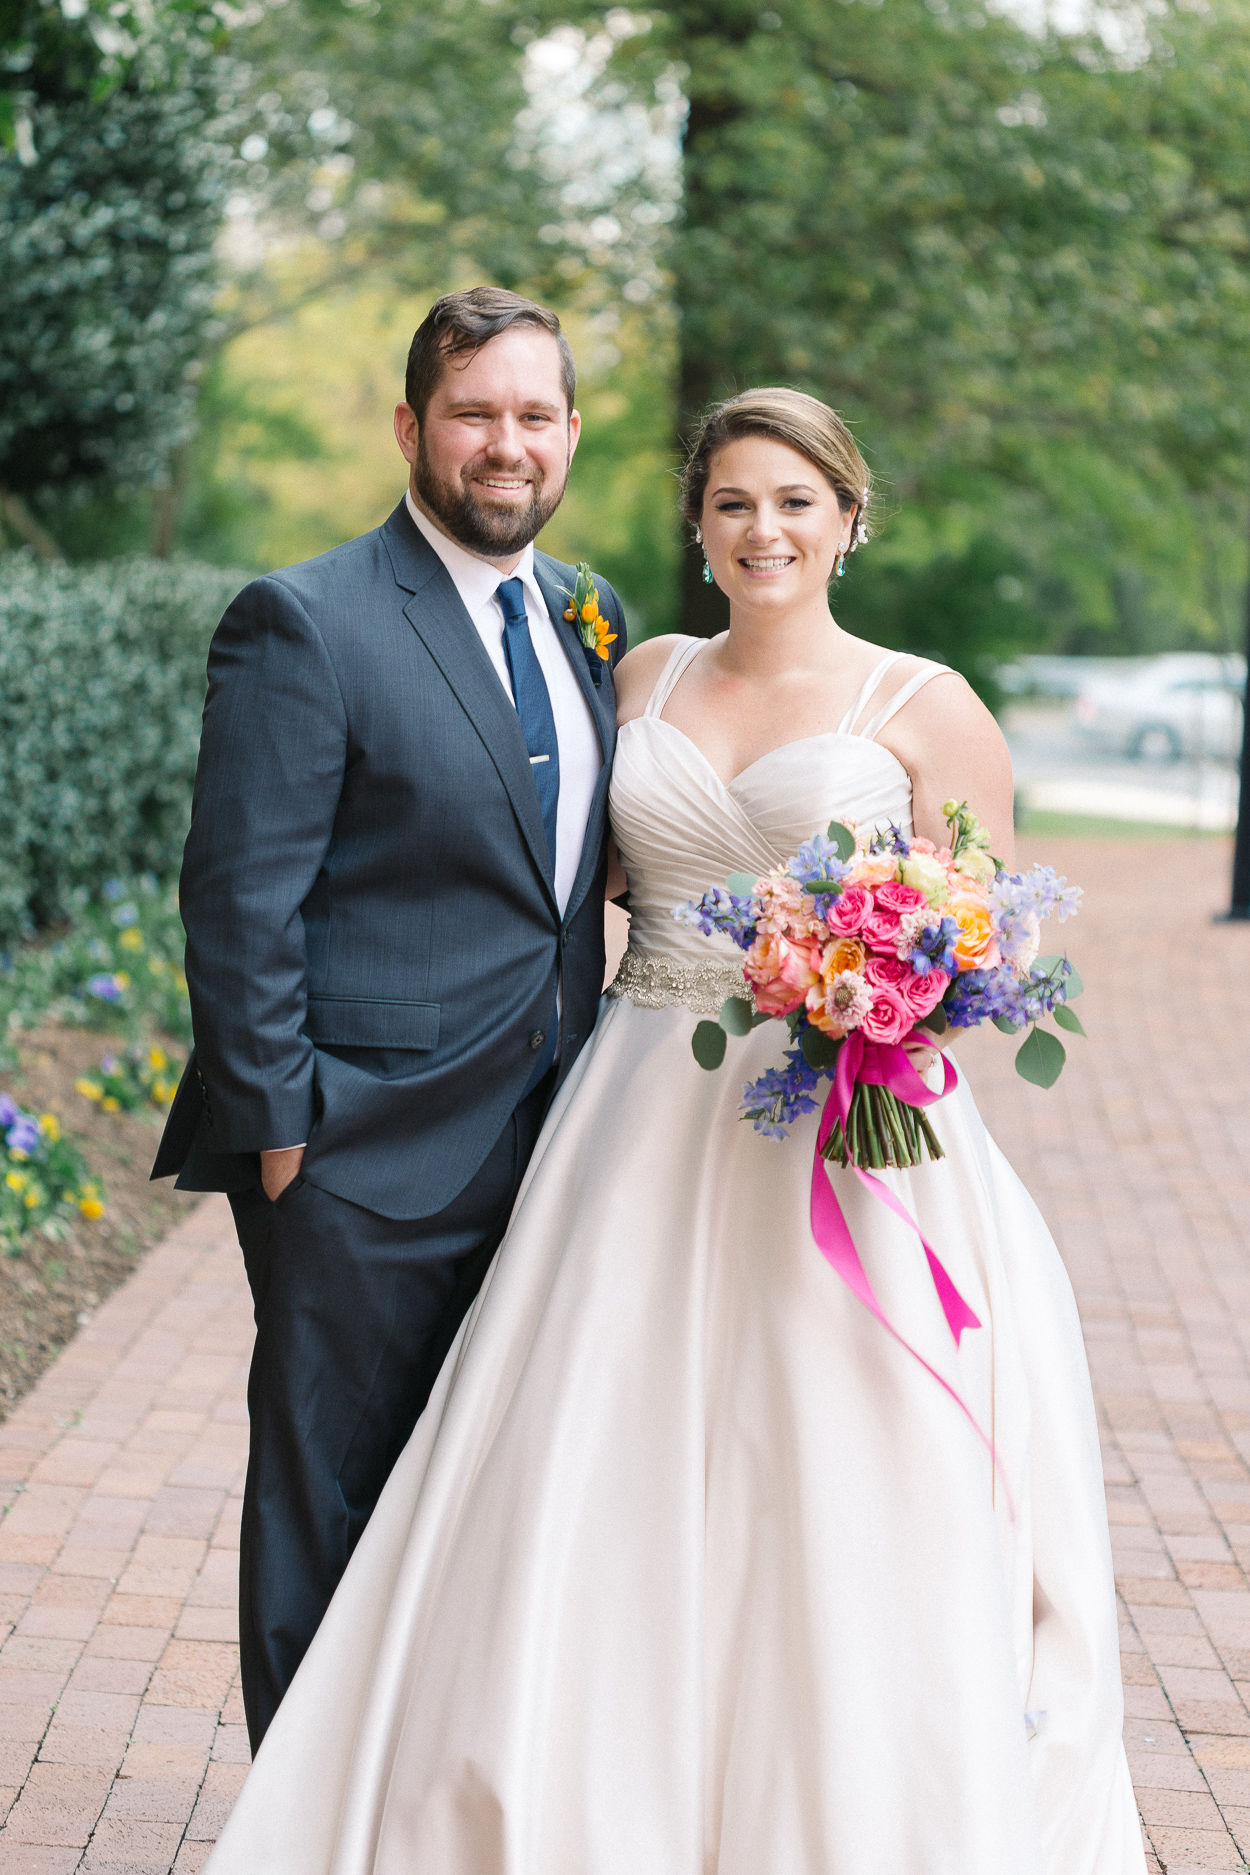 Michelle-whitley-photography-tower-club-wedding-tysons-corner